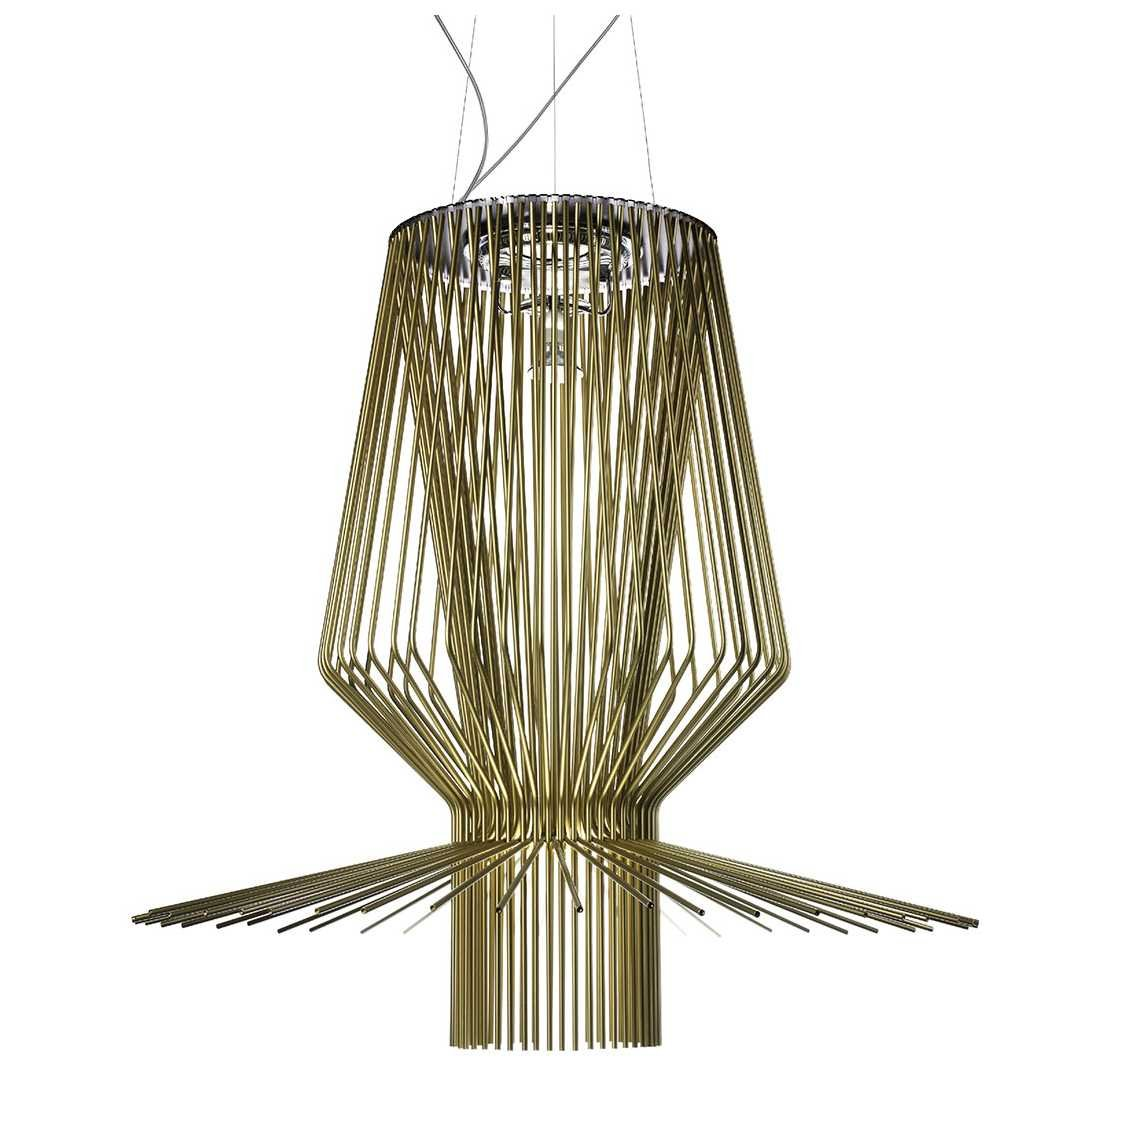 Awesome Foscarini Verlichting Extra Voordelig fotos - Woonkamer ...